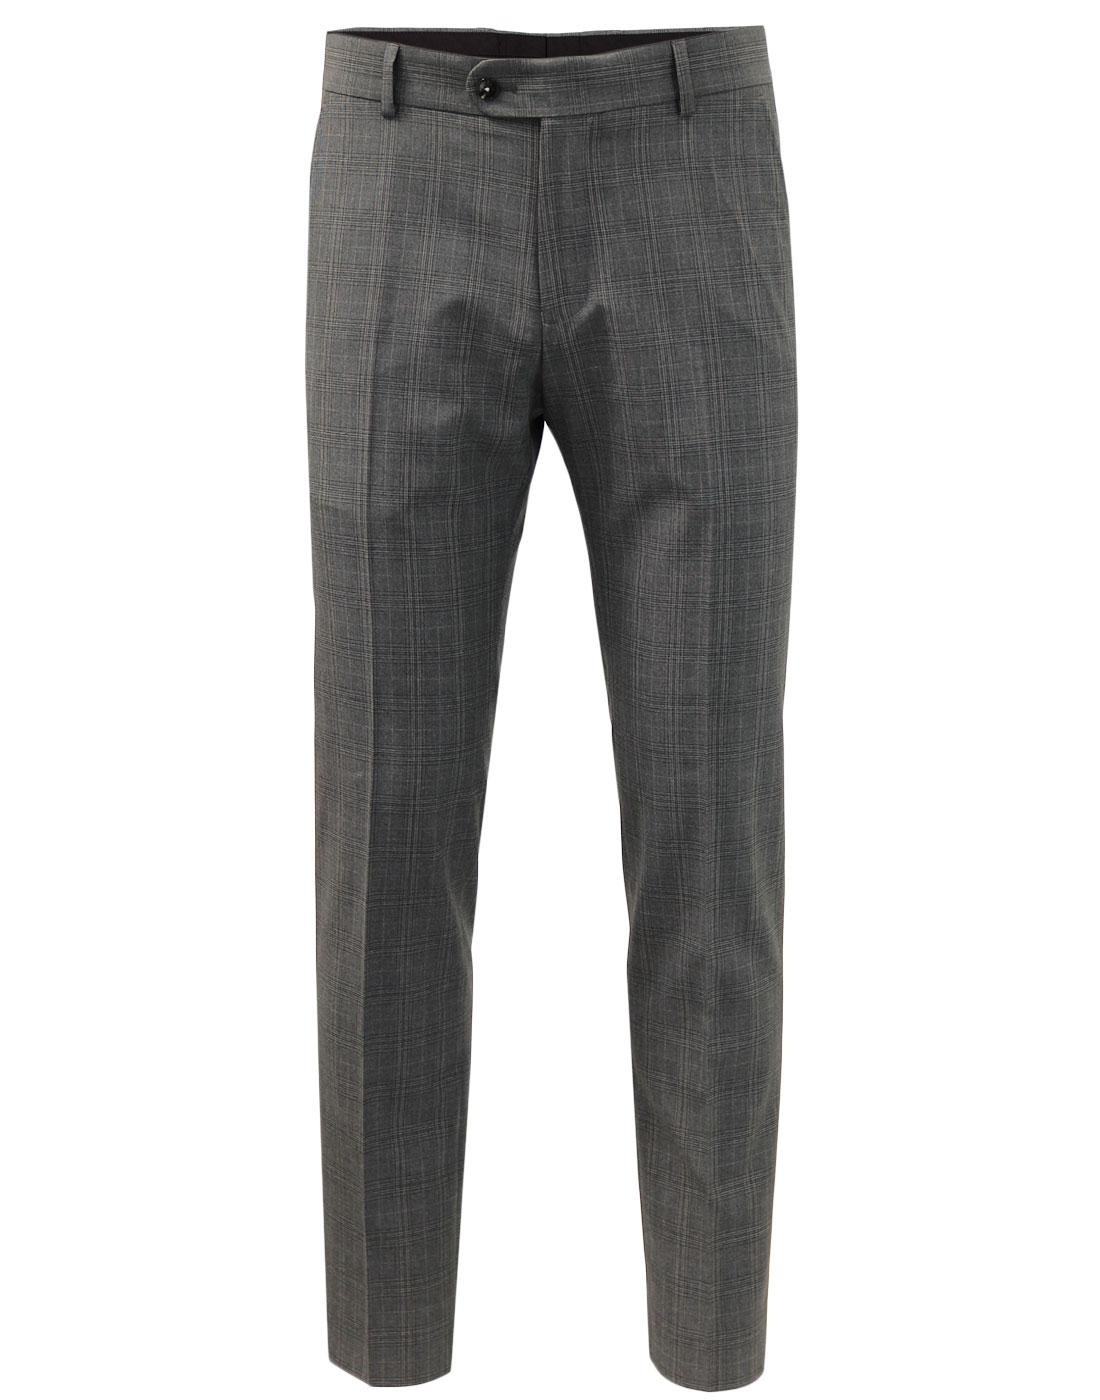 ANTIQUE ROGUE Retro POW Check Suit Trousers GREY